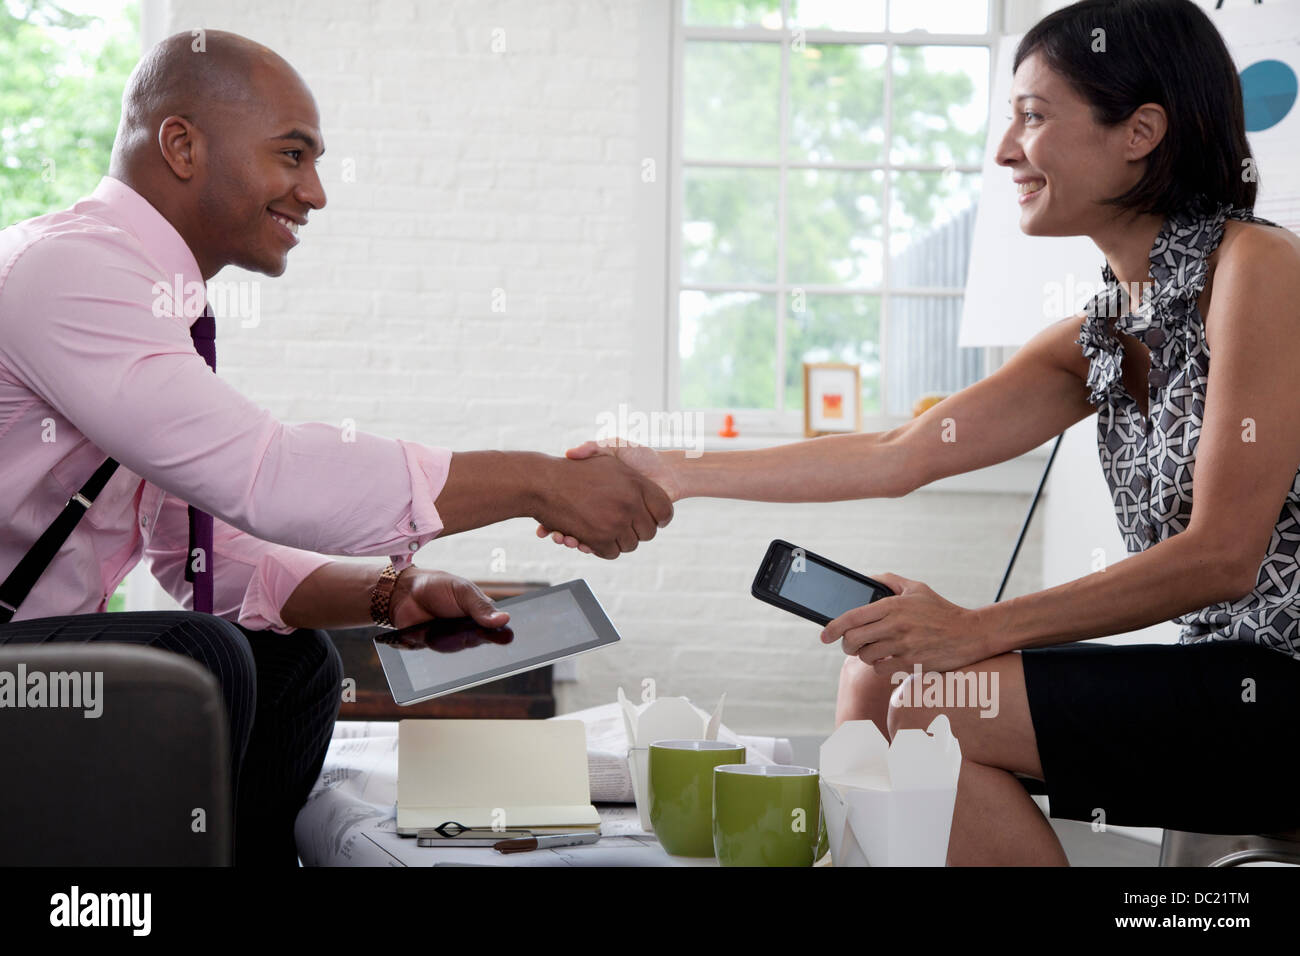 Office colleagues shaking hands in meeting, smiling - Stock Image